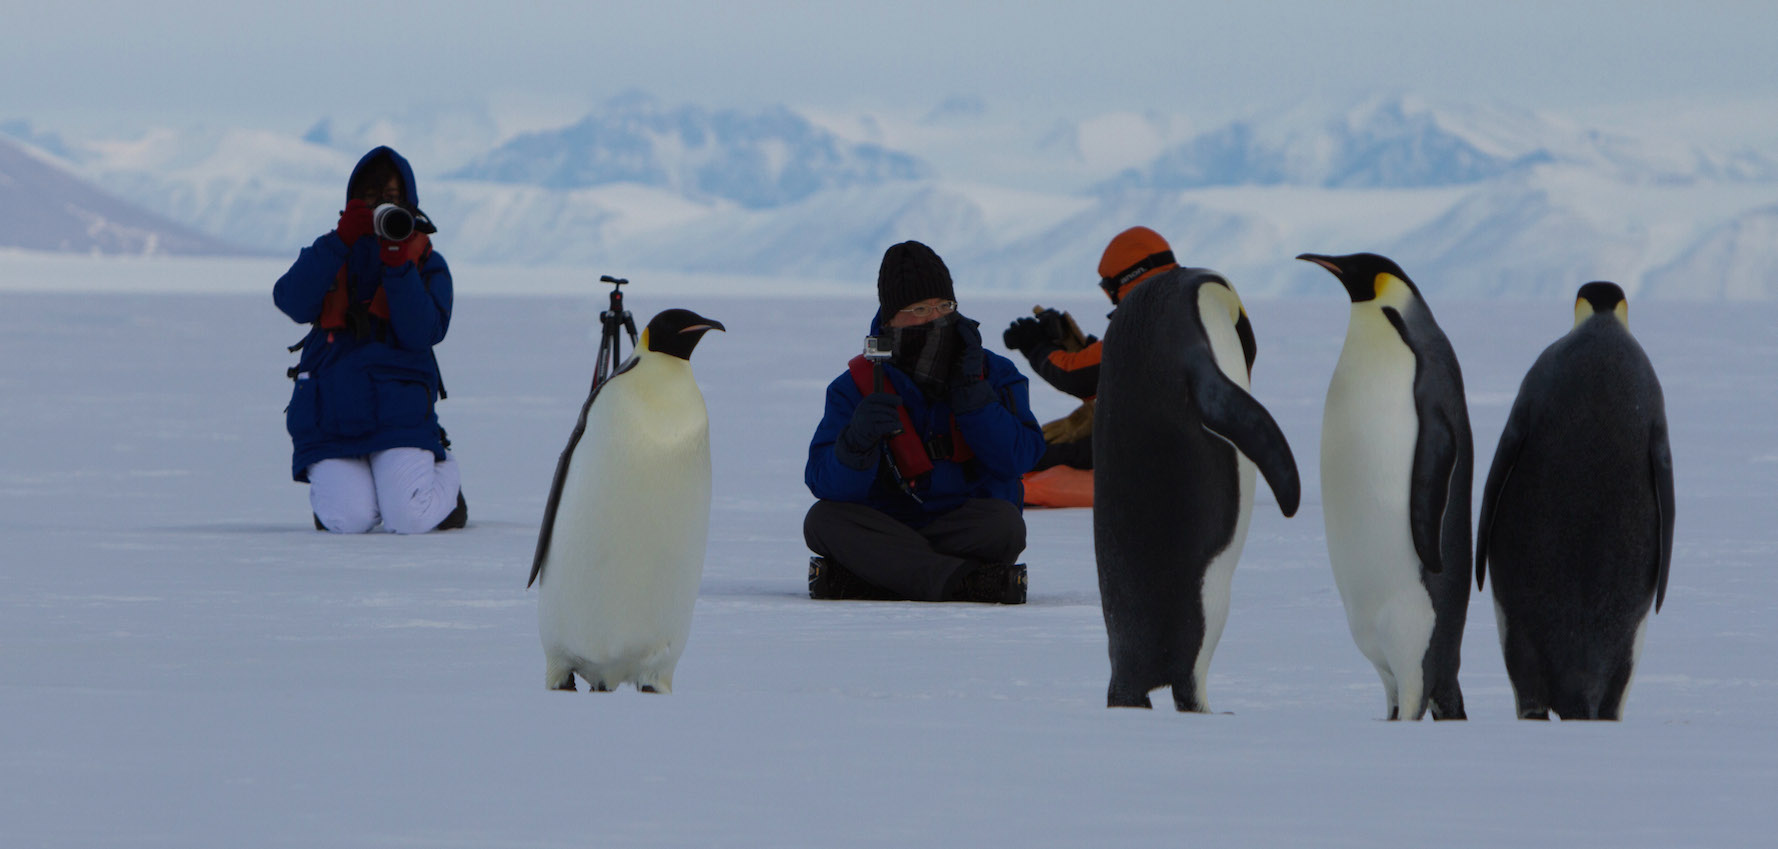 Ross Sea Antarctic Cruising: In the Wake of Scott & Shackleton 10 Jan 2020